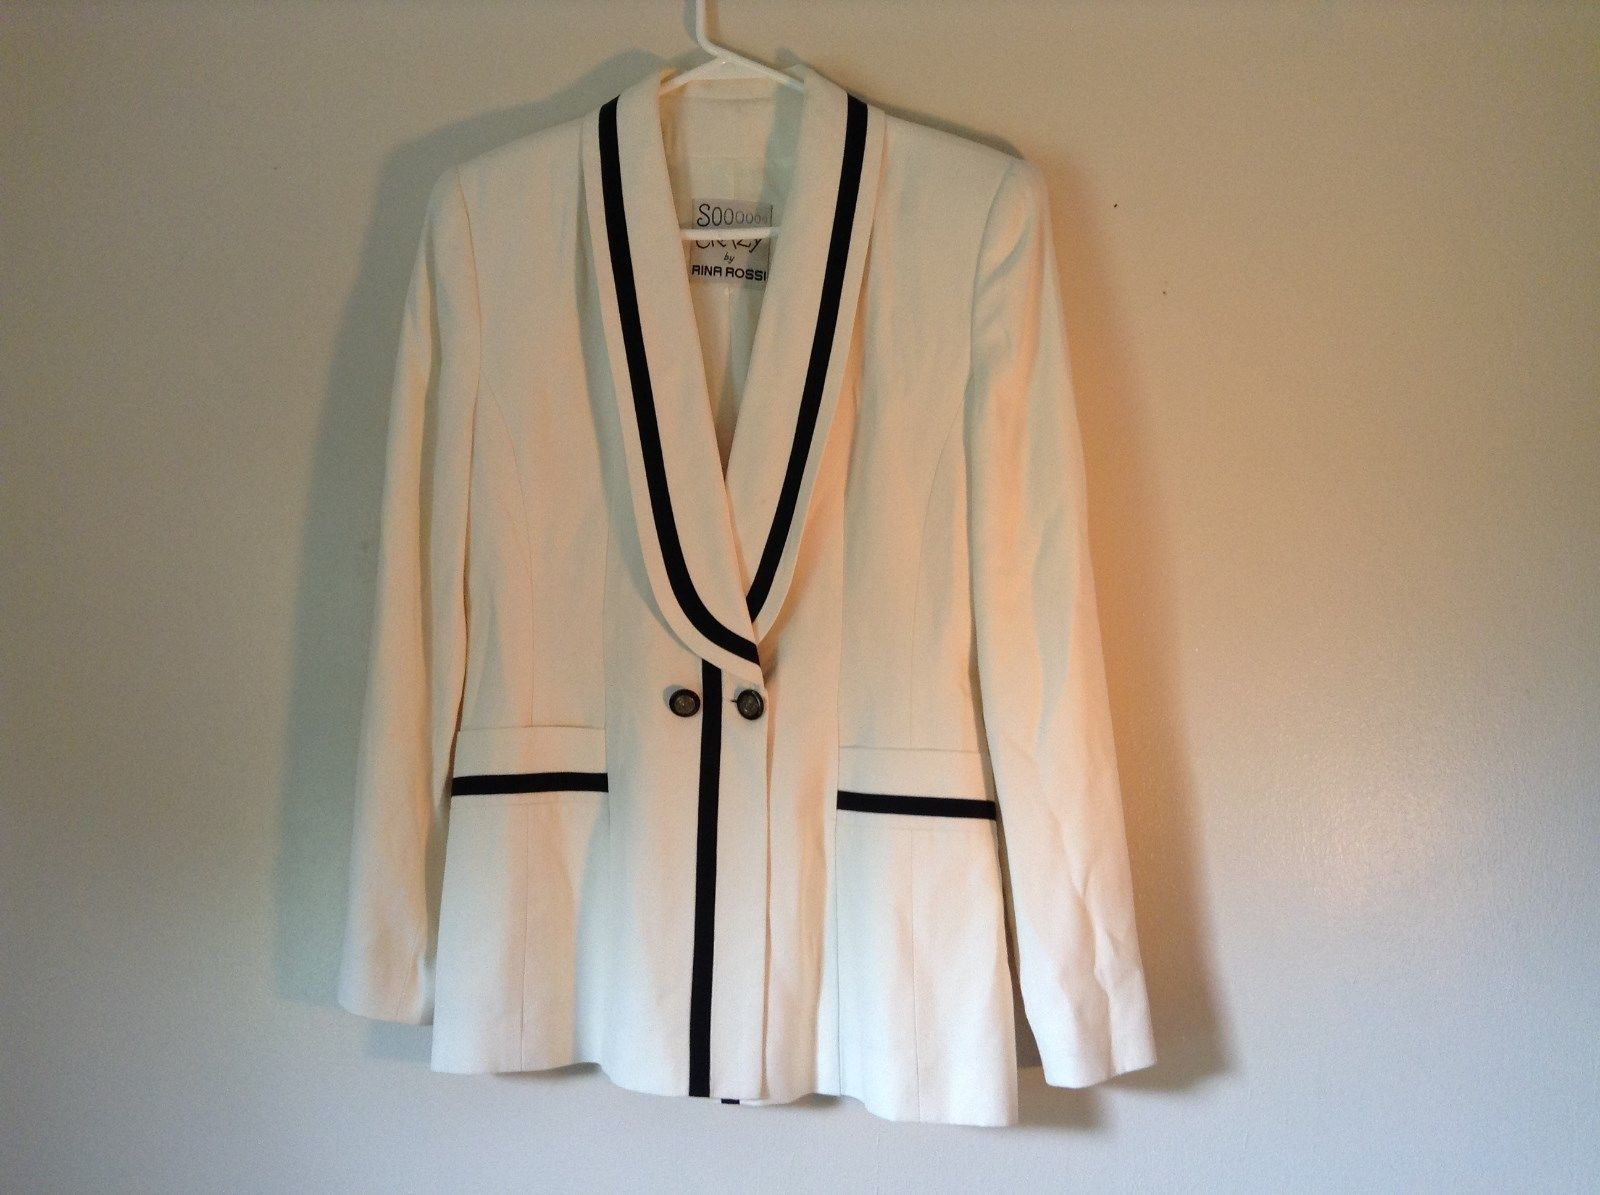 So Crazy by Rina Rossi White Blazer with Black Accent Blazer Shoulder Pads